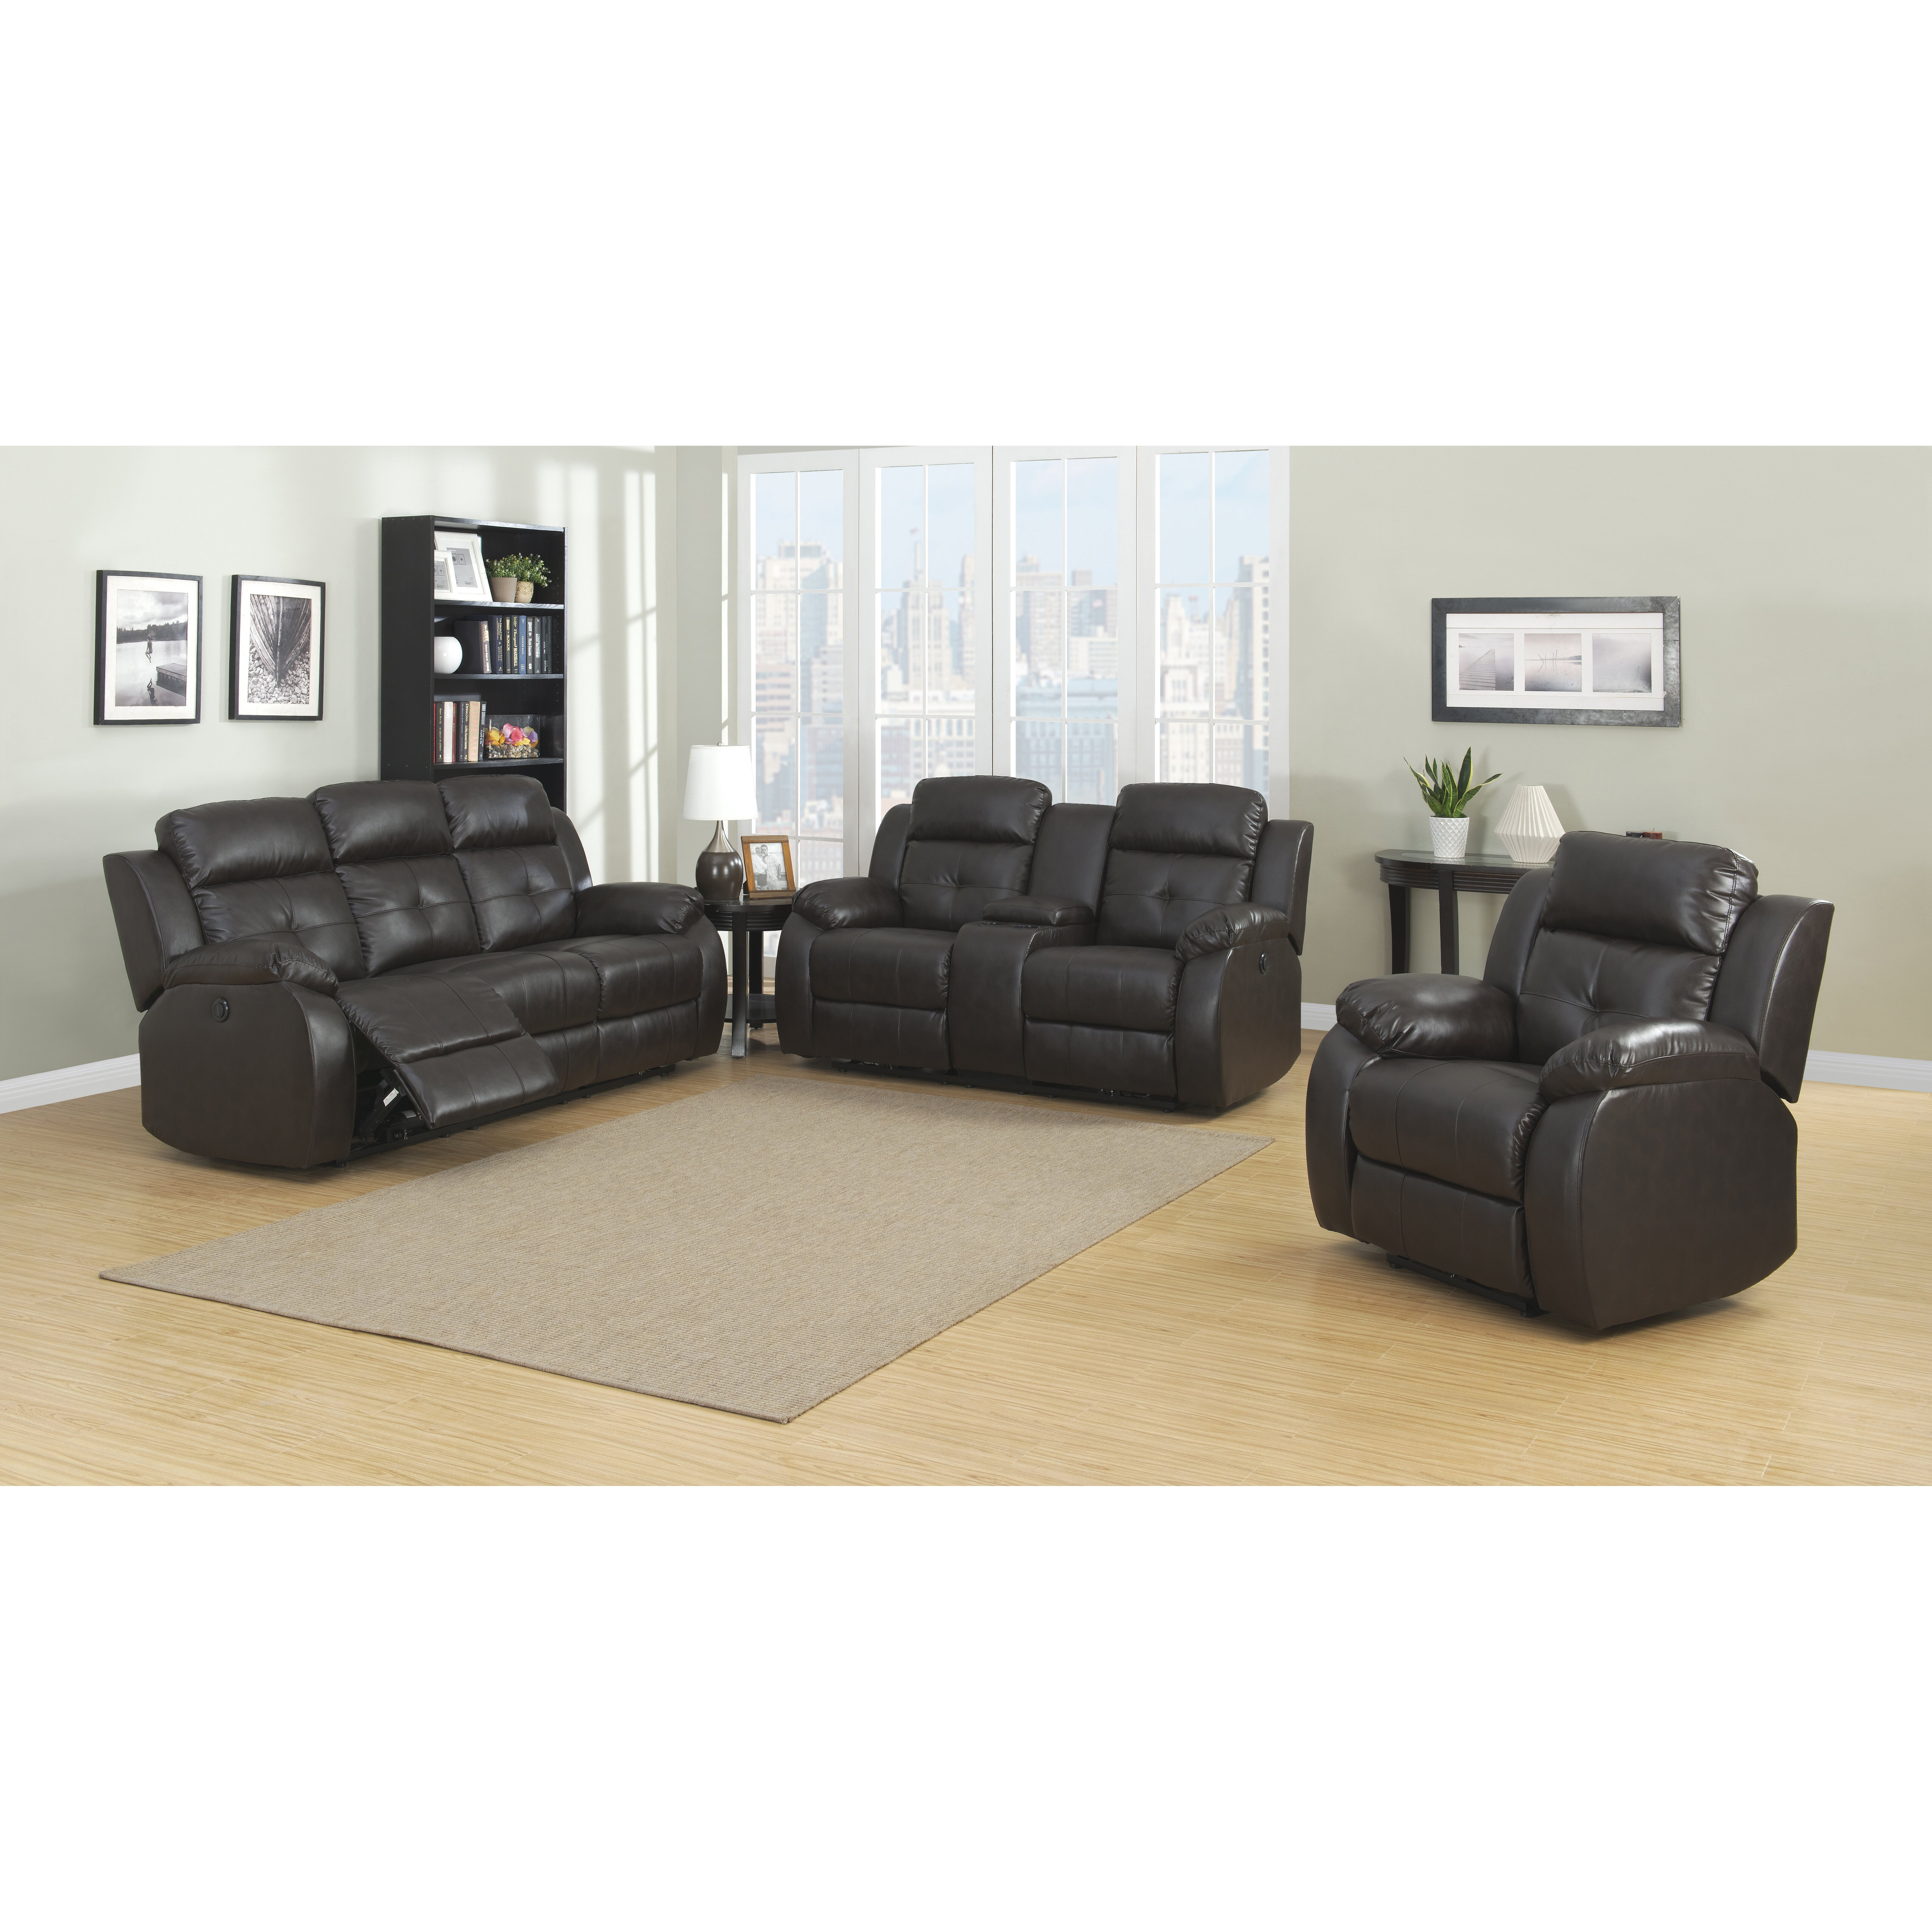 3 Piece Living Room Set Of Ac Pacific Troy Power 3 Piece Reclining Living Room Set